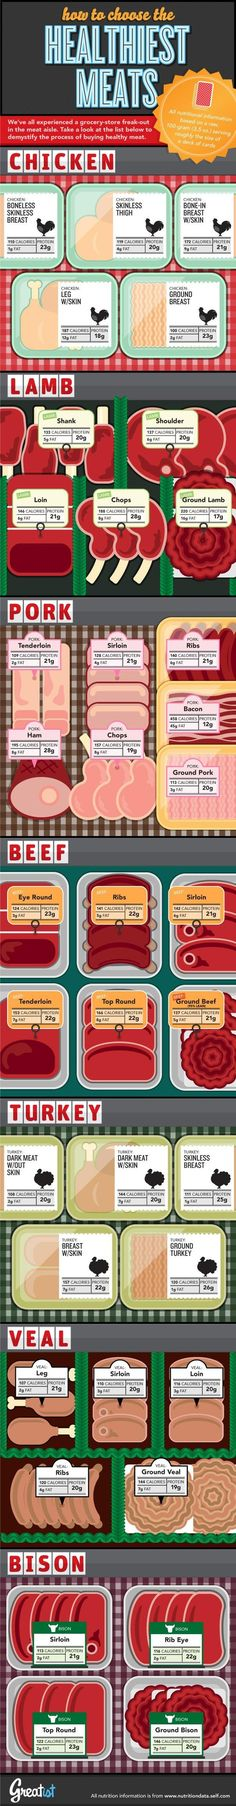 Attn meat eaters! Are ribs better than chicken w/ skin? Compare & contrast #calories, #protein & #fat here @Greatist